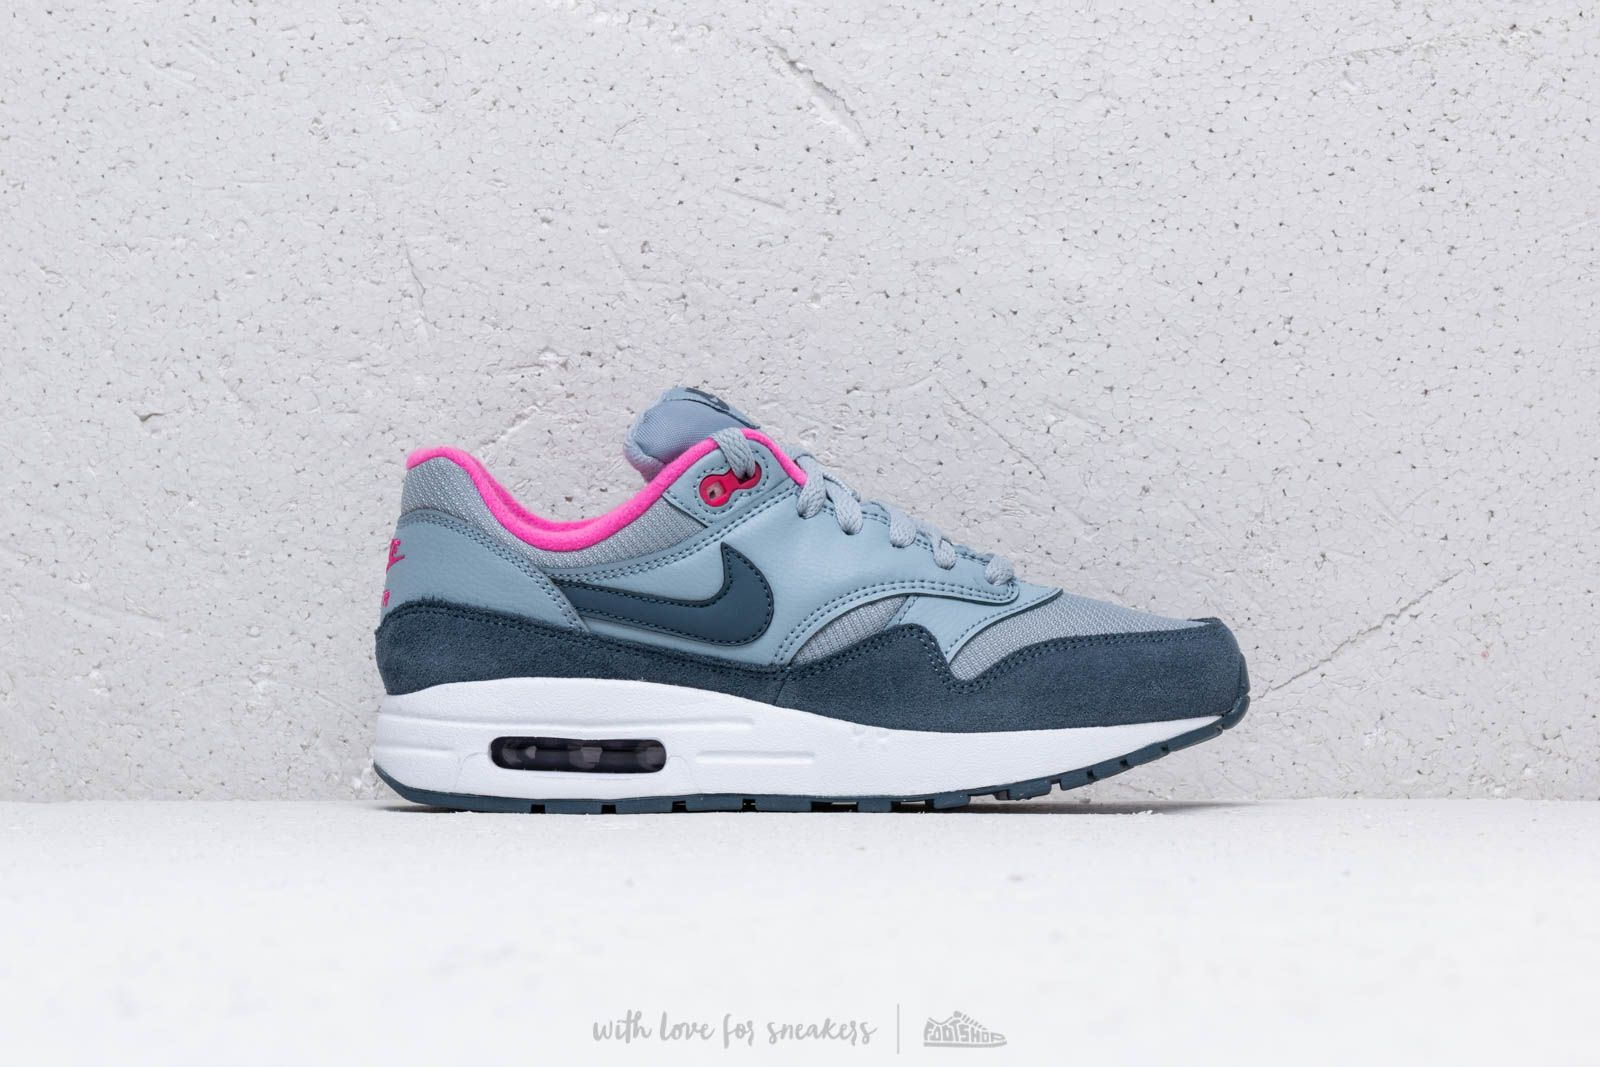 best service ffa25 6dead Nike Air Max 1 (GS) Obsidian Mist  Monsoon Blue-Laser Fuchsia at